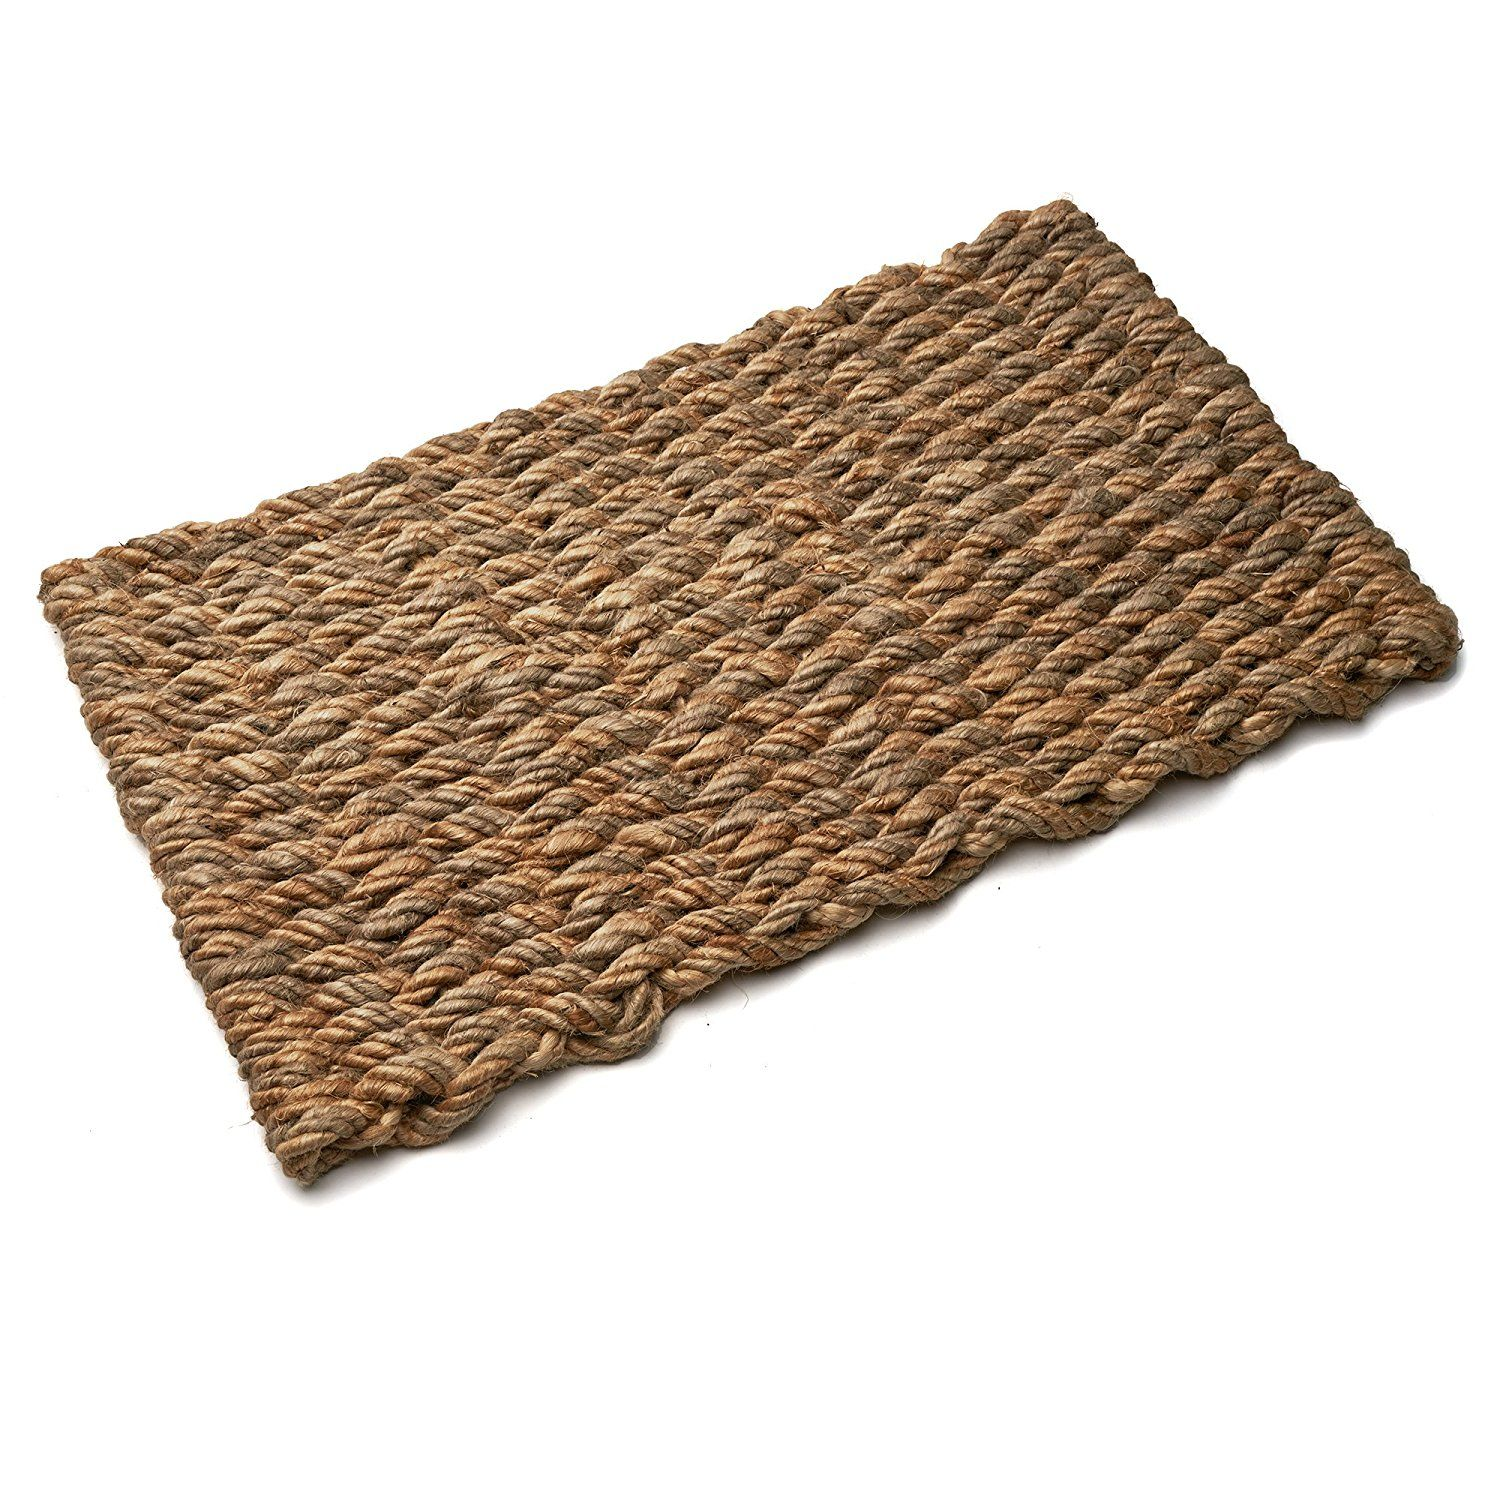 Garrett Wade Natural Jute Door Mat Extra Large Want To Know More Click On The Image Affiliate Link Doormats Natural Jute Door Mat Kings County